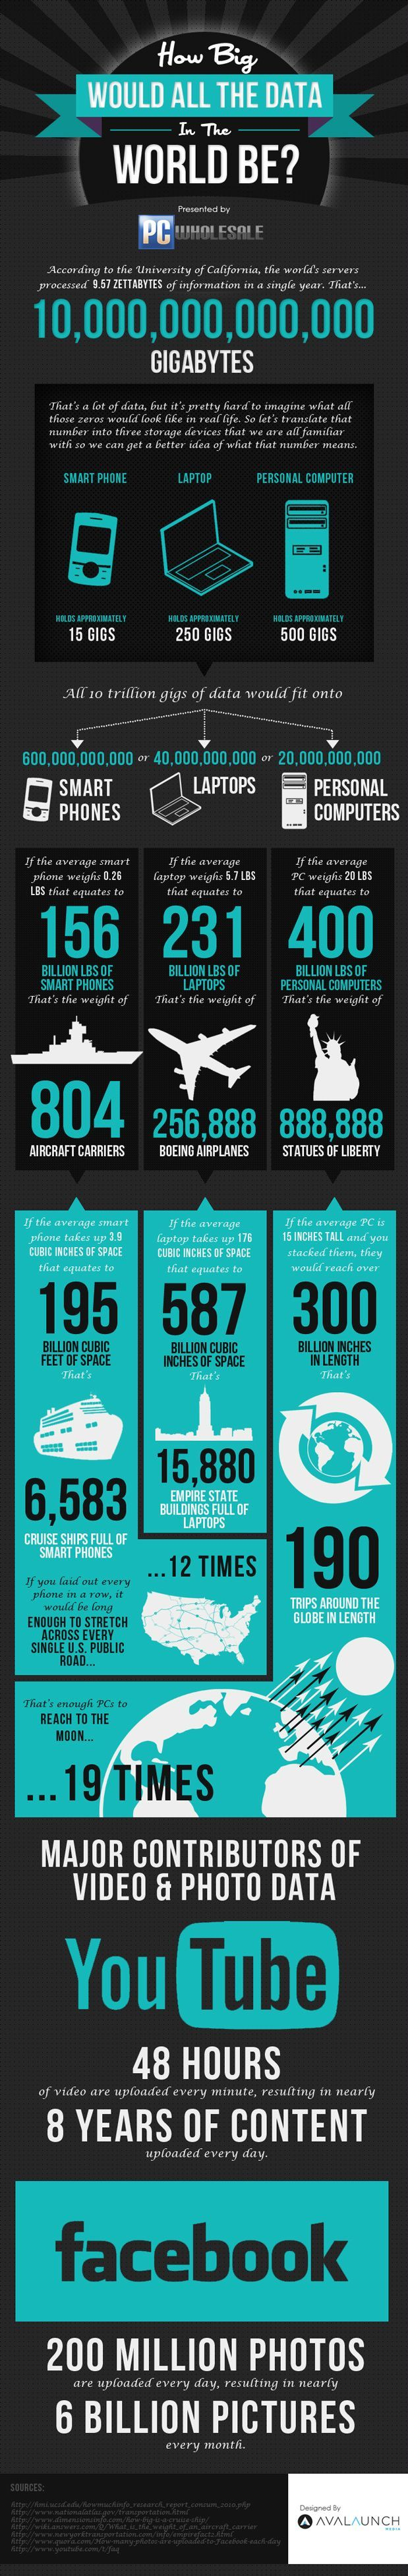 All the data in the world... Wow! #infographic #marketing #bigdata